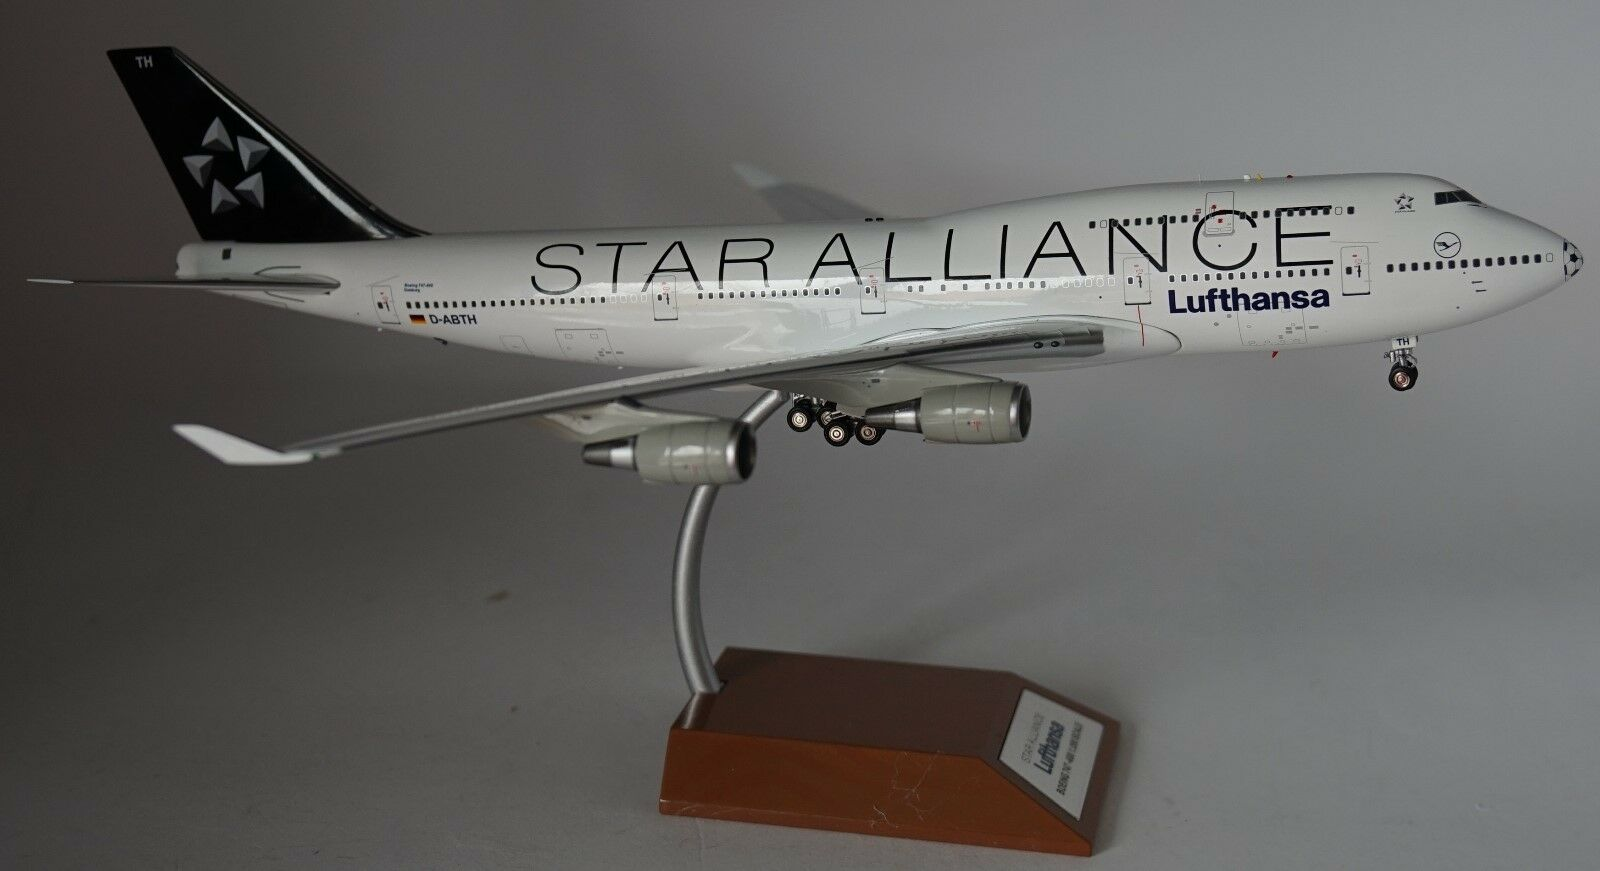 blueE BOX WBSAFOOTBALL Boeing 747-430(M) Lufthansa -Star Alliance D-ABTH in in 1 200